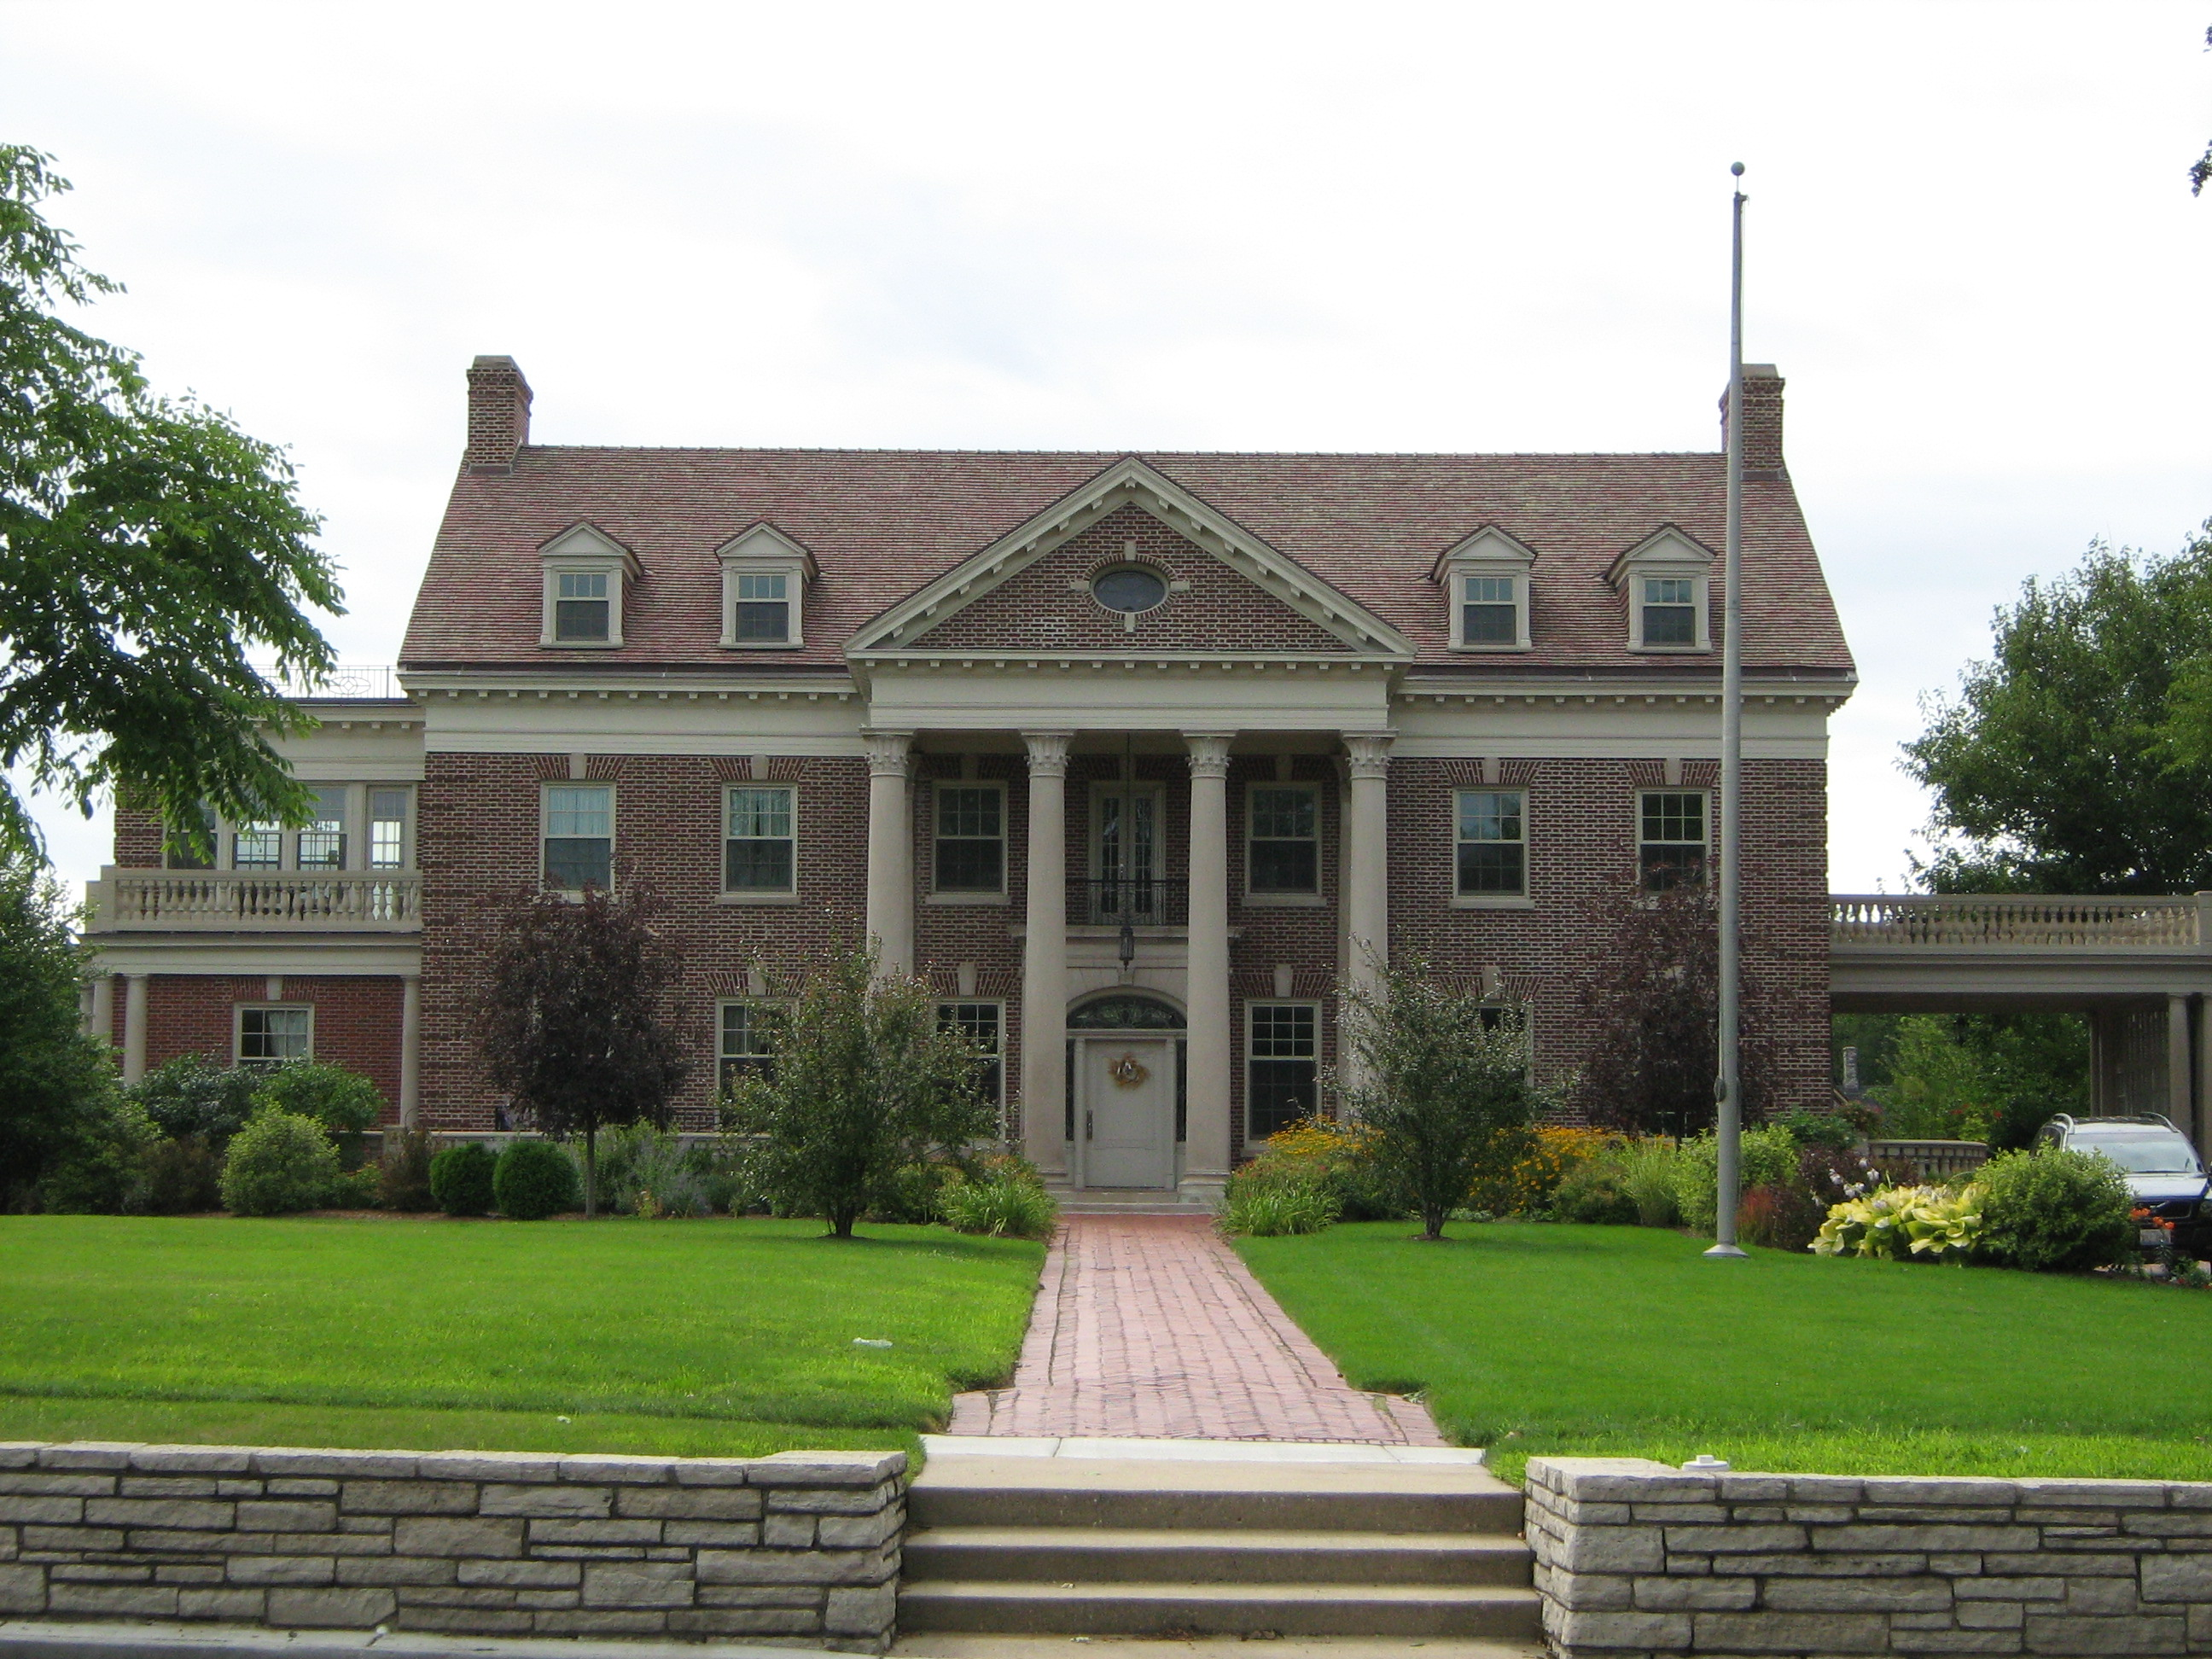 Front of Mansion, Taken on August 22, 2009